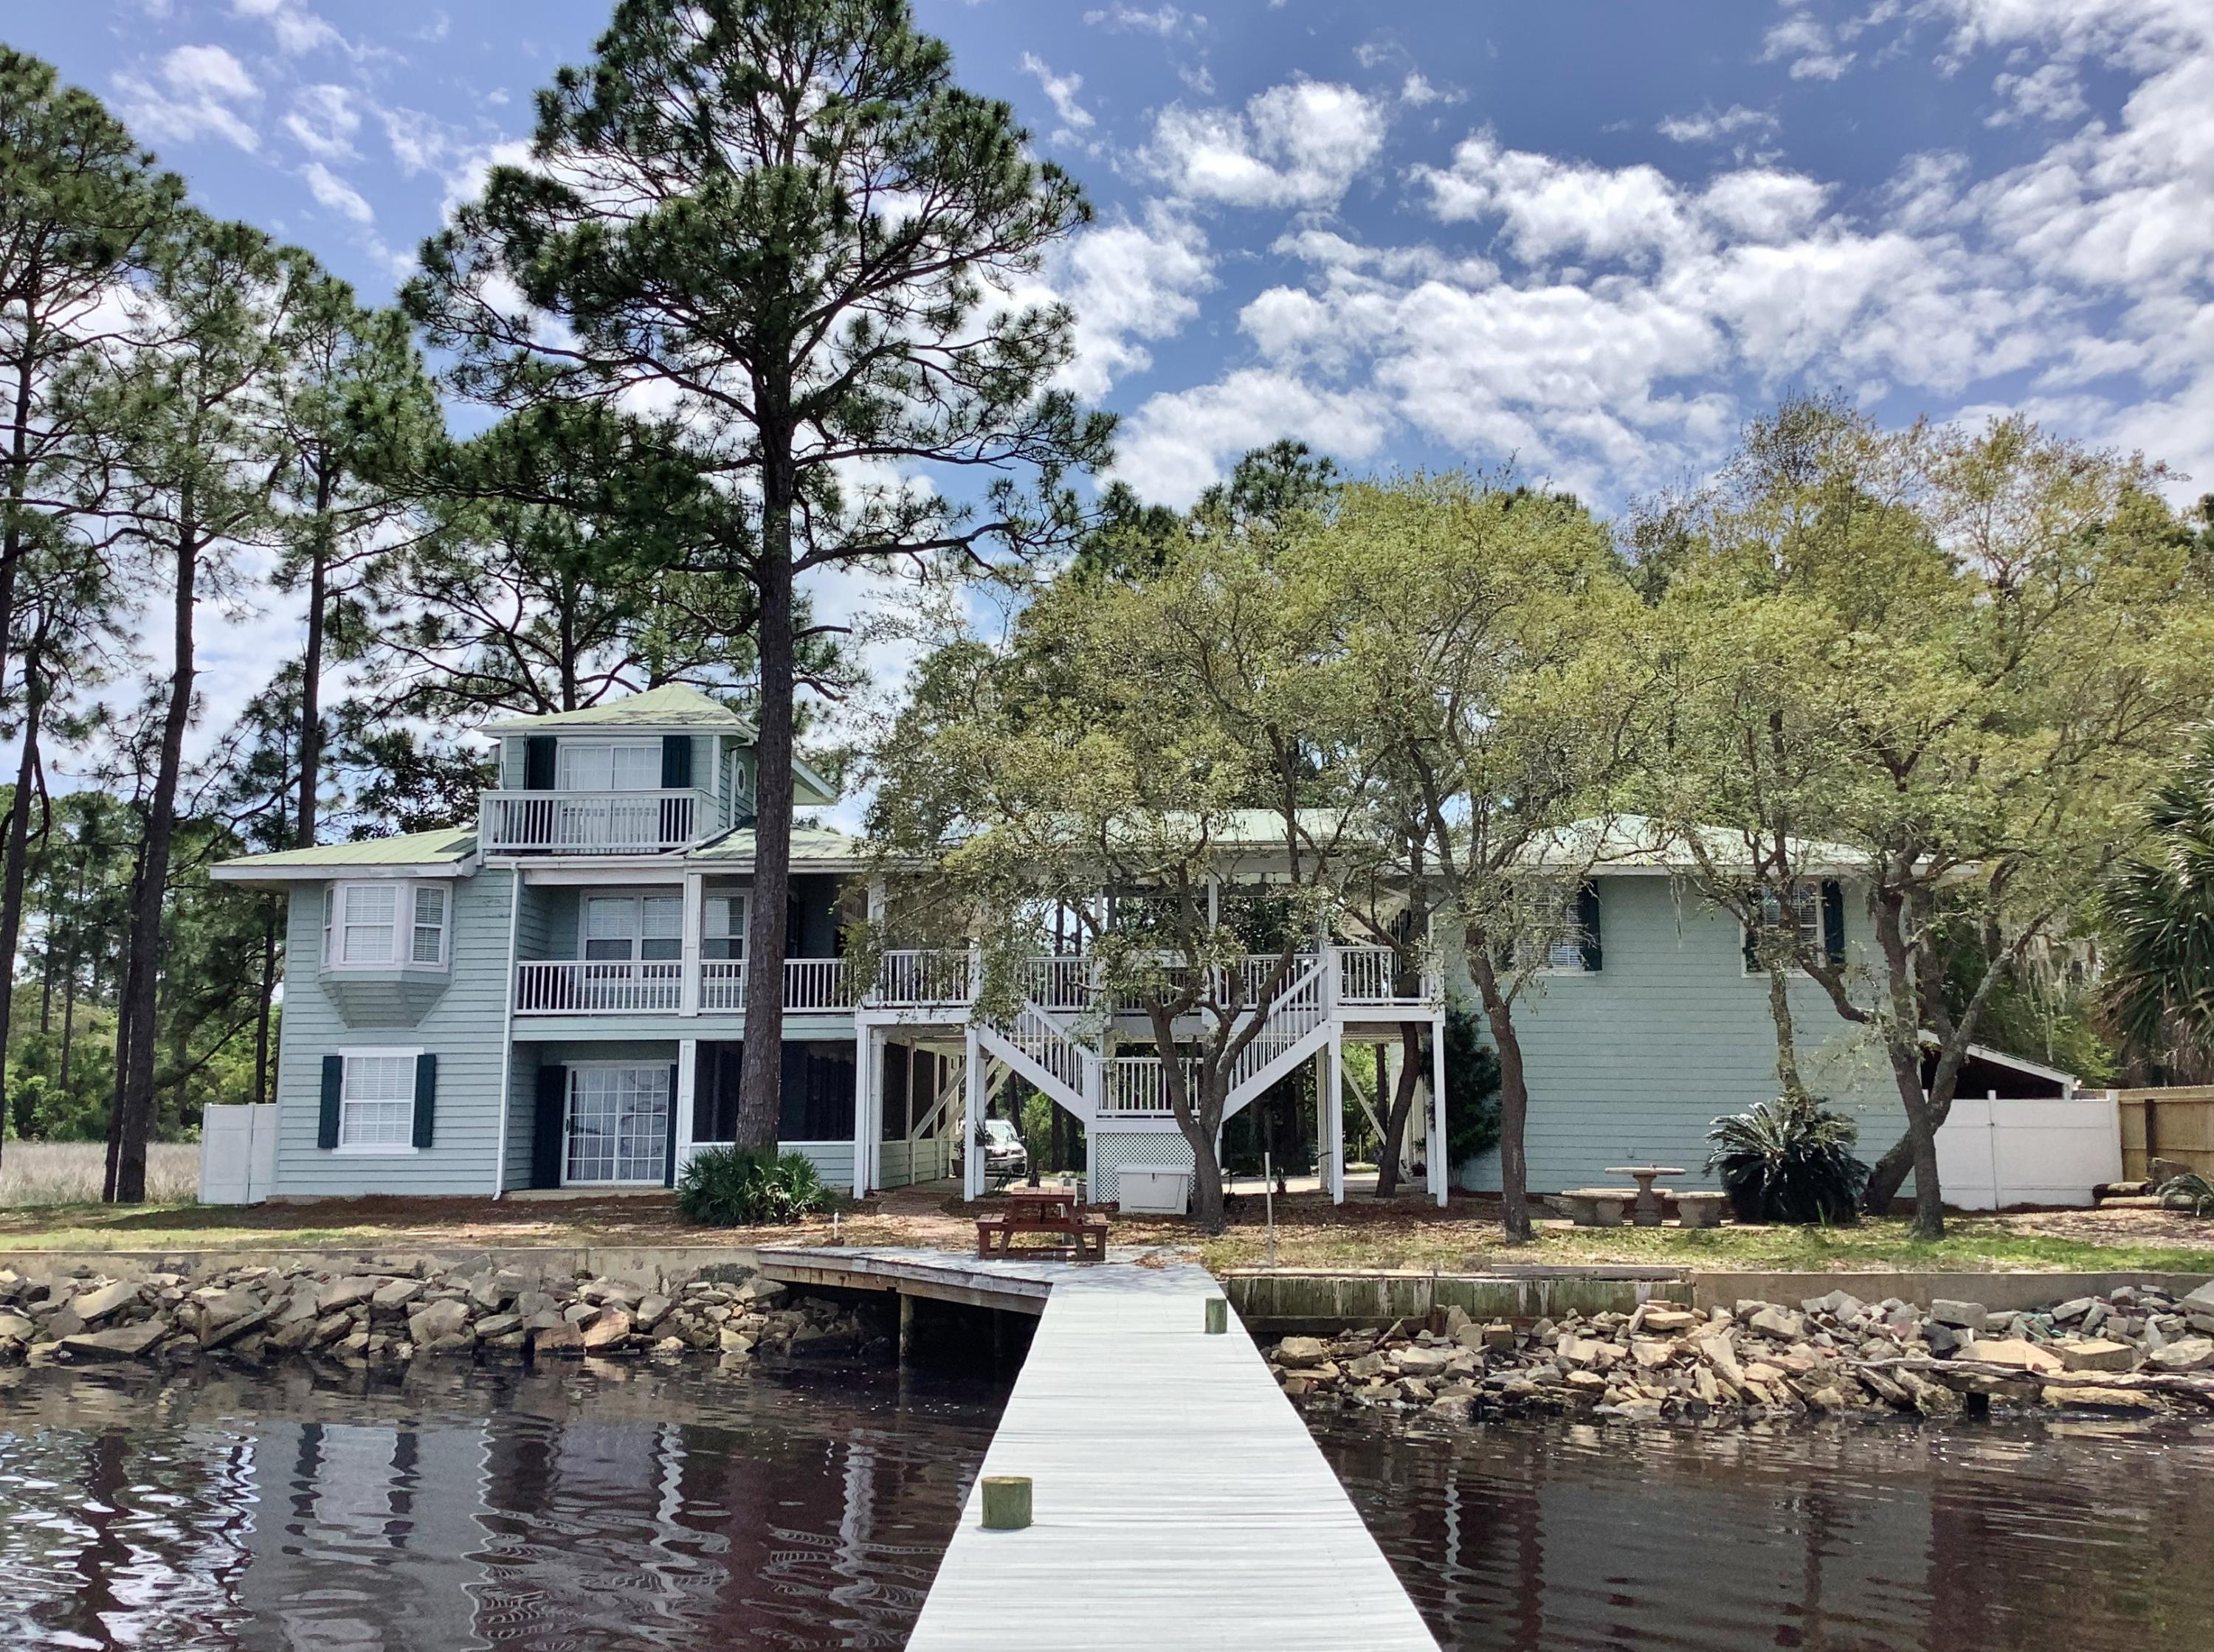 REDUCED! Boaters Paradise situated on a tranquil peninsula with 163ft of prime waterfront, private dock with lift, and intercoastal access. Lovingly known as 'The Bridge House' it's the vision of an award winning, mixed media artist, and her engineer husband with an affinity towards the water. A covered walkway connects main house to guest house, with expansive covered decks capturing  breathtaking views of the Bay. Designed for easy Coastal living with a flare towards Southern hospitality, guests and family have their private,1 bedroom, 2 bath Guest House with full Kitchen, Living and Dining Room. Main home is filled with special features and textures like solid Cypress floors, solid Wild Cherrywood Wall and breakfast bar, Solid Oak cabinets, a soaring ceiling surrounded by windows pouring natural light into the ensconced Loft, inviting Living and Dining area and kitchen with breakfast bar. Master bedroom has window seat with Bay window. Downstairs is a perfect artists studio, and/or another Living room, 2nd Bedroom and full bath, plus a laundry closet. Sliding doors go out to the Bay front patio. A wrap around screened in porch completes the main home. A 1 Car garage, plus workshop garage, has a washer/dryer hook up for the Guest House. Main home is made of solid Cypress wood with aluminum roof. Guest house is hardiboard siding with galvalume roof, built in 2001, featuring bead board accents, and bamboo flooring inside. There's a fenced camper parking corral, generous guest parking, and a marsh along 1 side where any number of beautiful birds can be found. The sunsets are unforgettable, with a painters palette of colors stunning to see over the distant 331 bridge as its backdrop. This Coastal compound on over 1/2 an acre at the end of the quaint, Non HOA, 10 home subdivision welcomes you in along a private drive with well groomed front yard, studded with Magnolias. A neighborhood boat launch is just across the way, with navigable waters through the marsh. The poss